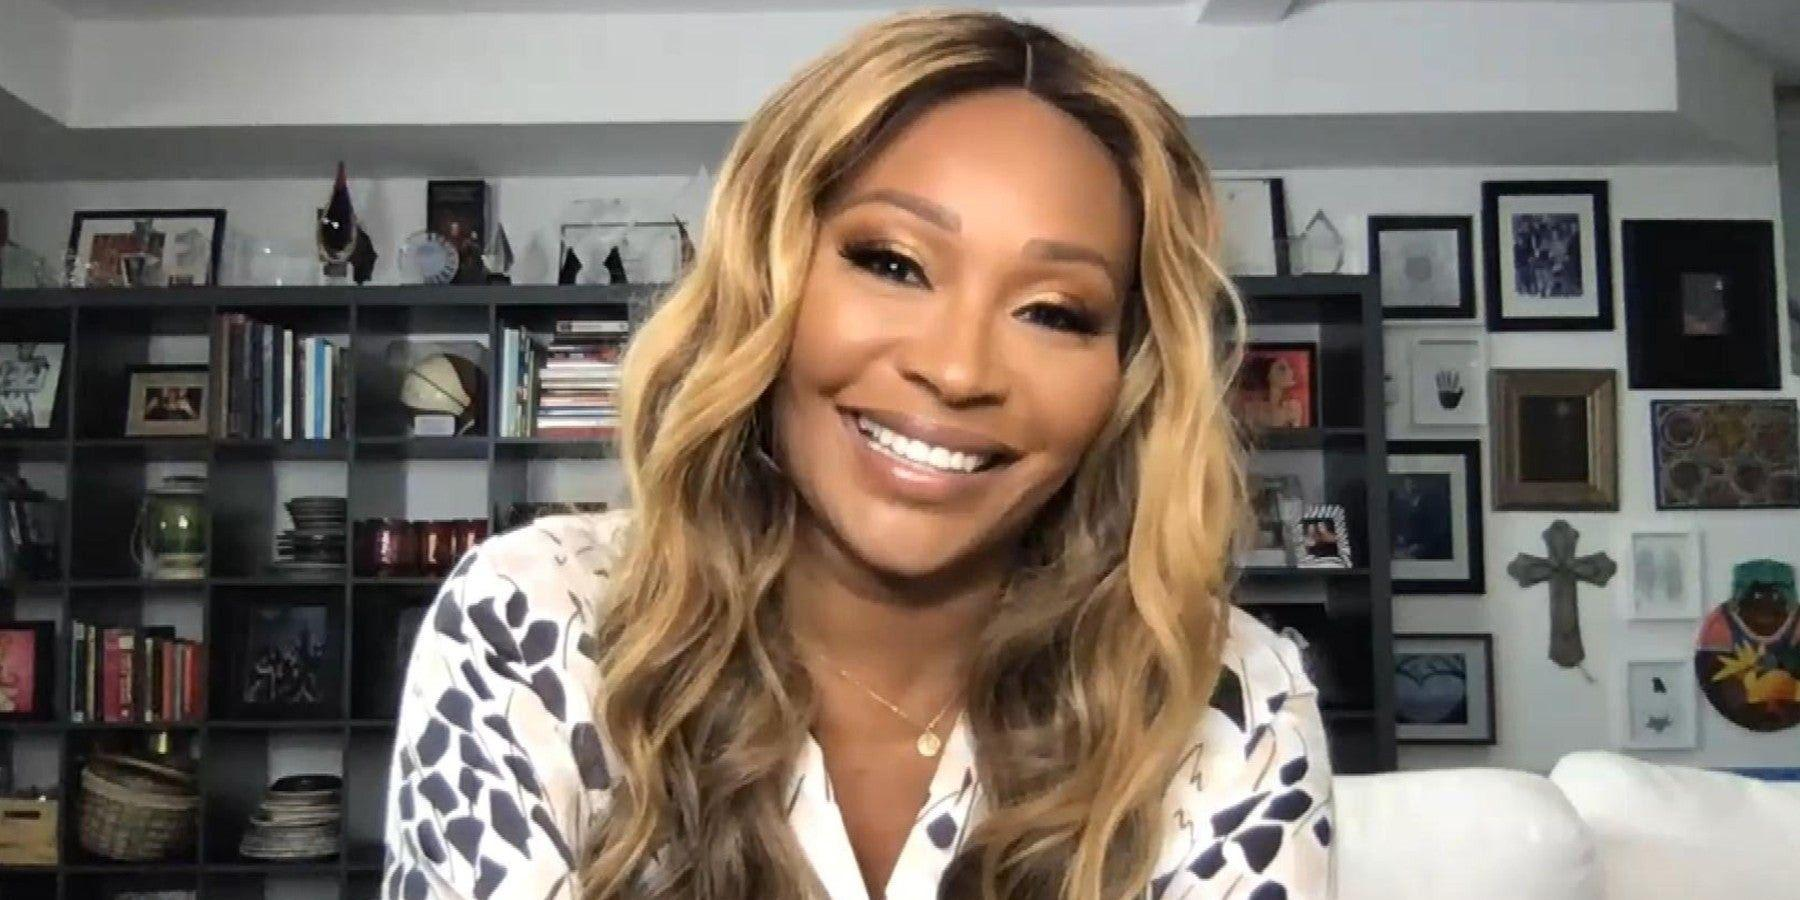 Cynthia Bailey's Video Featuring This Boy Has Everyone Talking - See The Clip Here